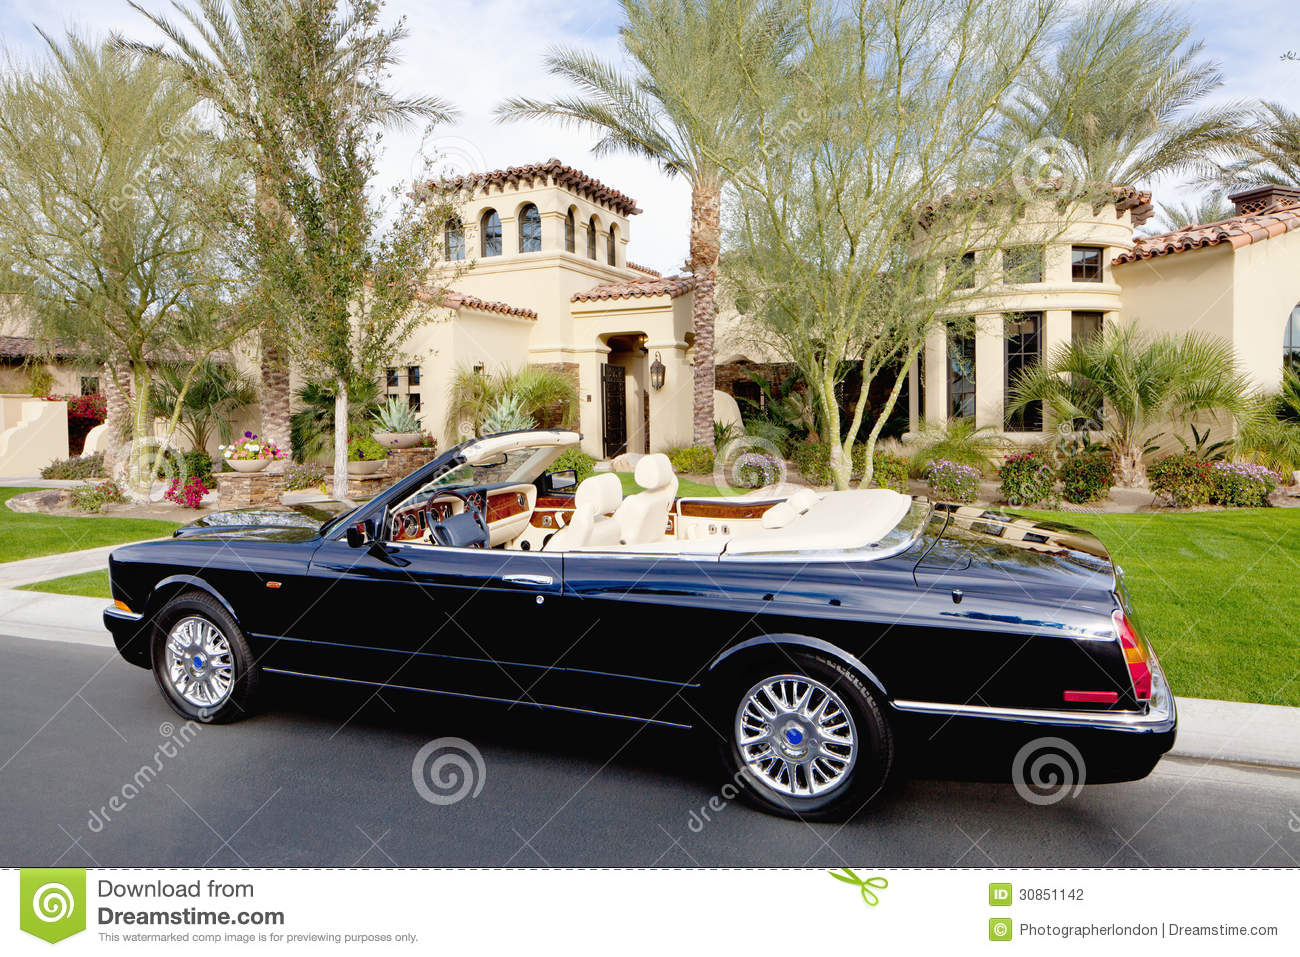 Luxury House And Car luxurious convertible car parked in front of a mansion house stock